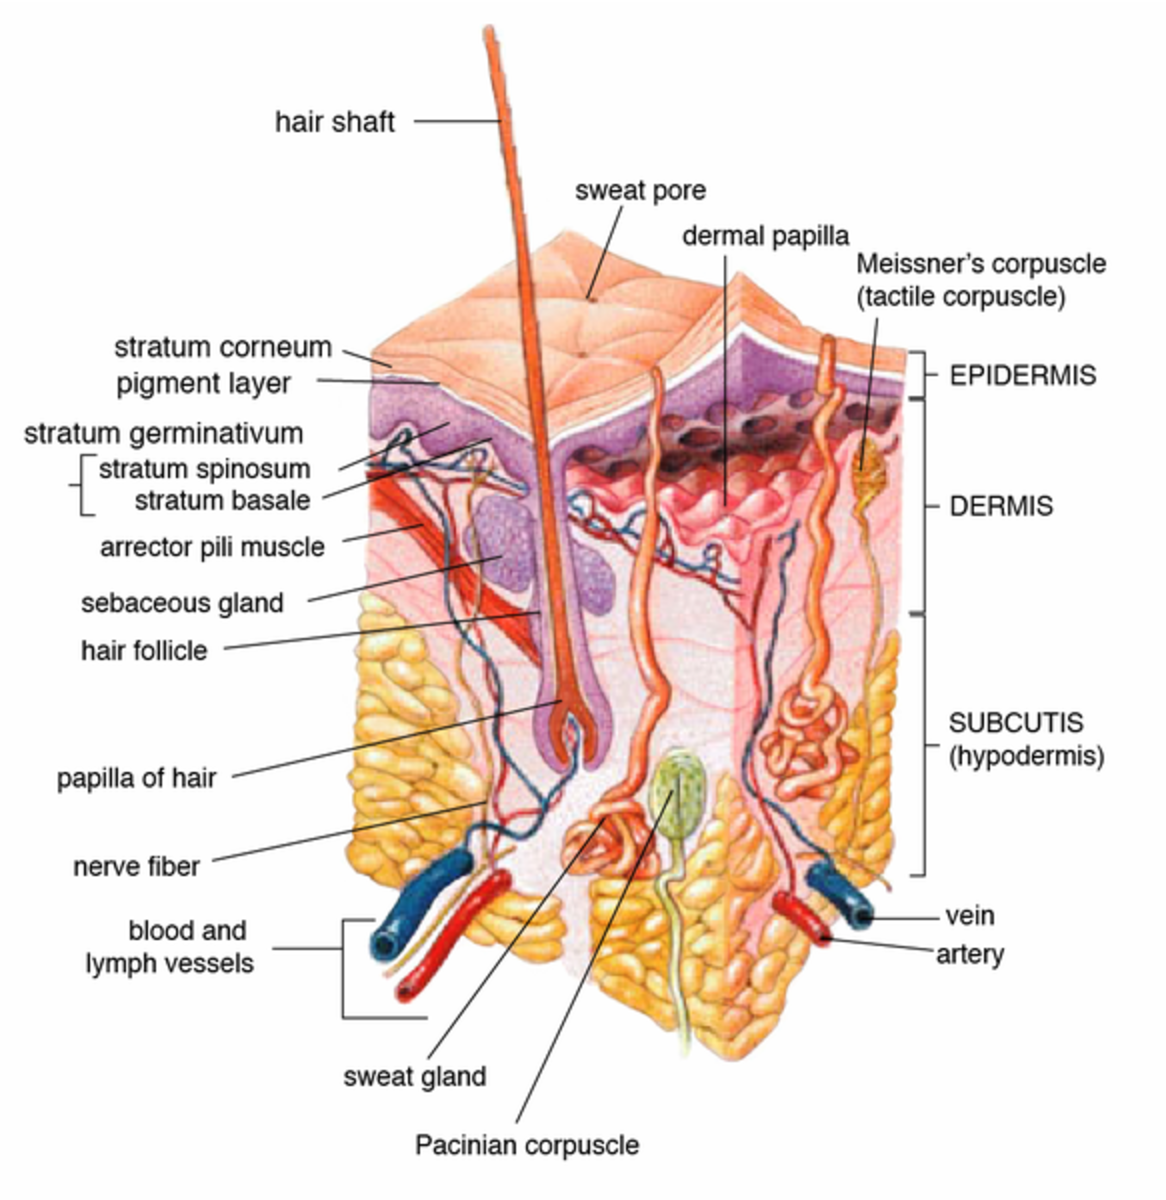 Layers of the skin, including the hypodermis